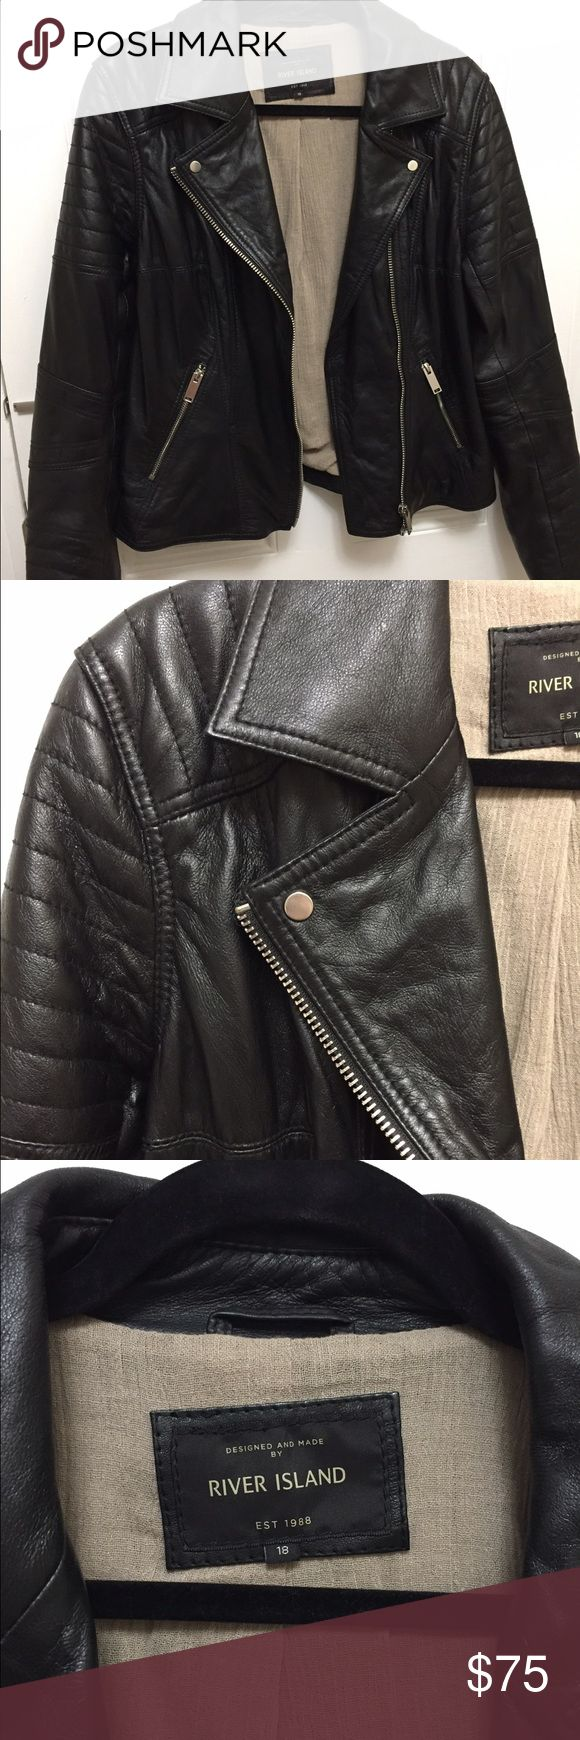 River Island leather jacket US size 14/16 River Island leather jacket US size 14/16 UK size 18 ... worn once excellent condition River Island Jackets & Coats